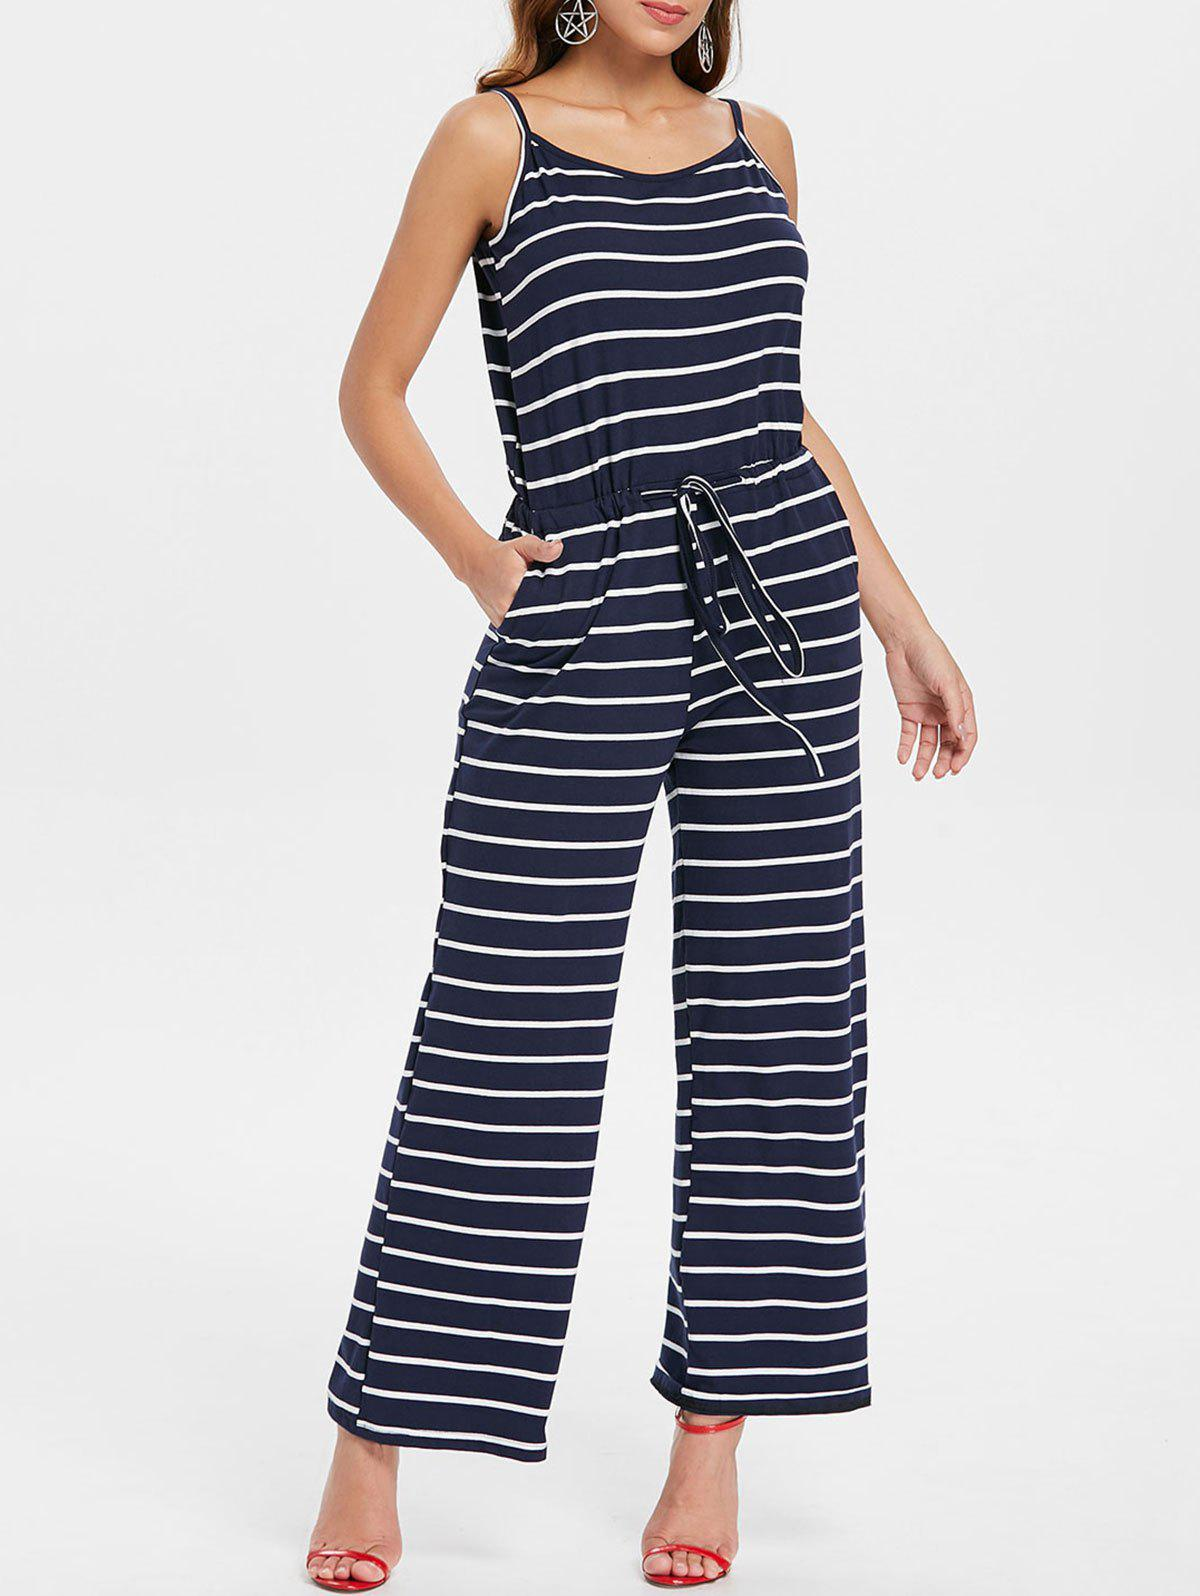 Spaghetti Strap Striped Jumpsuit - NAVY BLUE 2XL